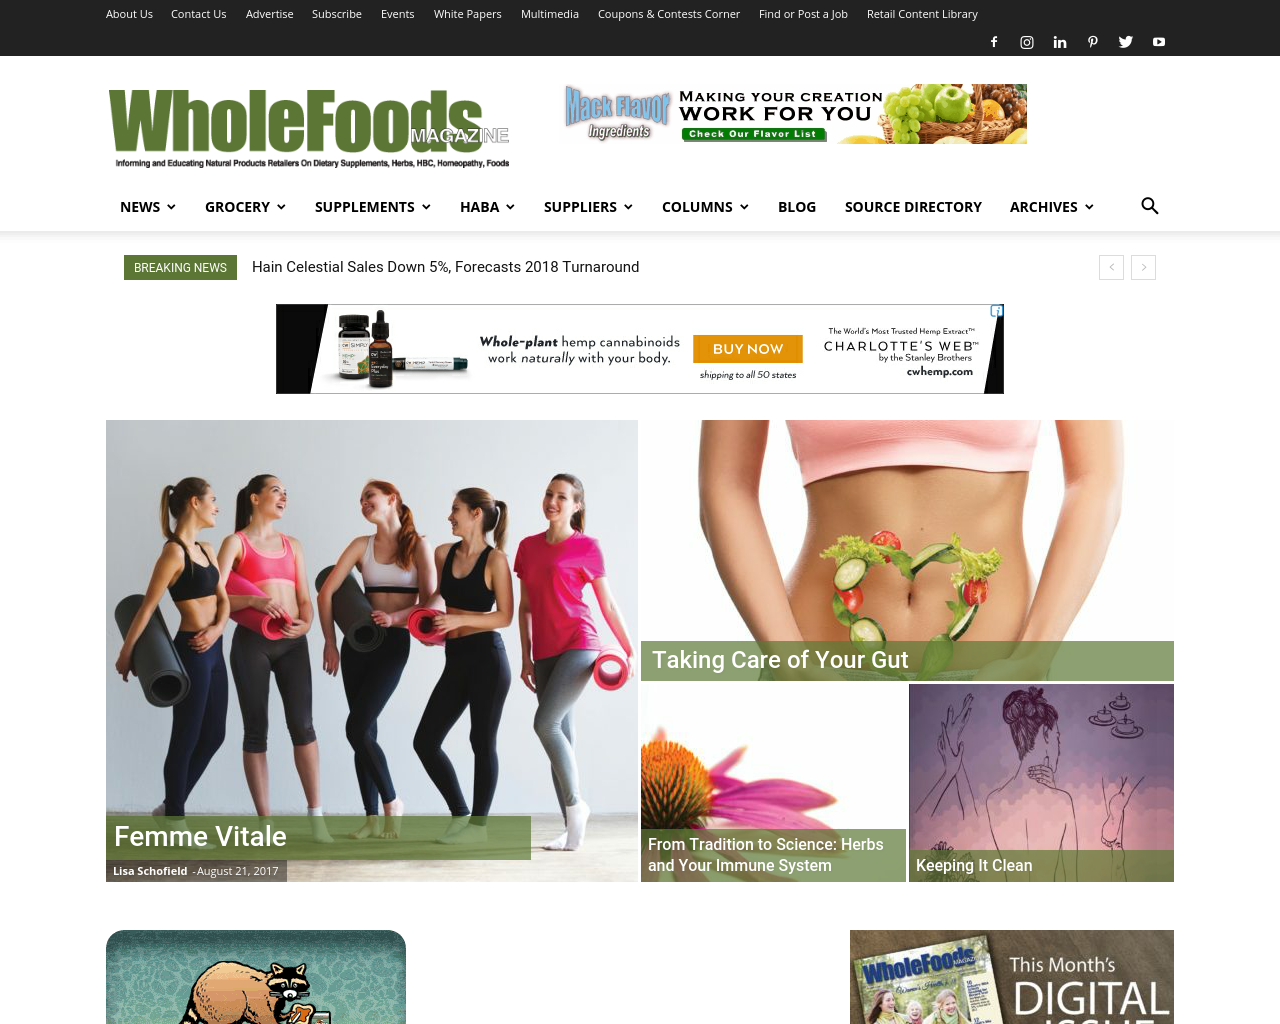 WholeFoods-Magazine-Advertising-Reviews-Pricing